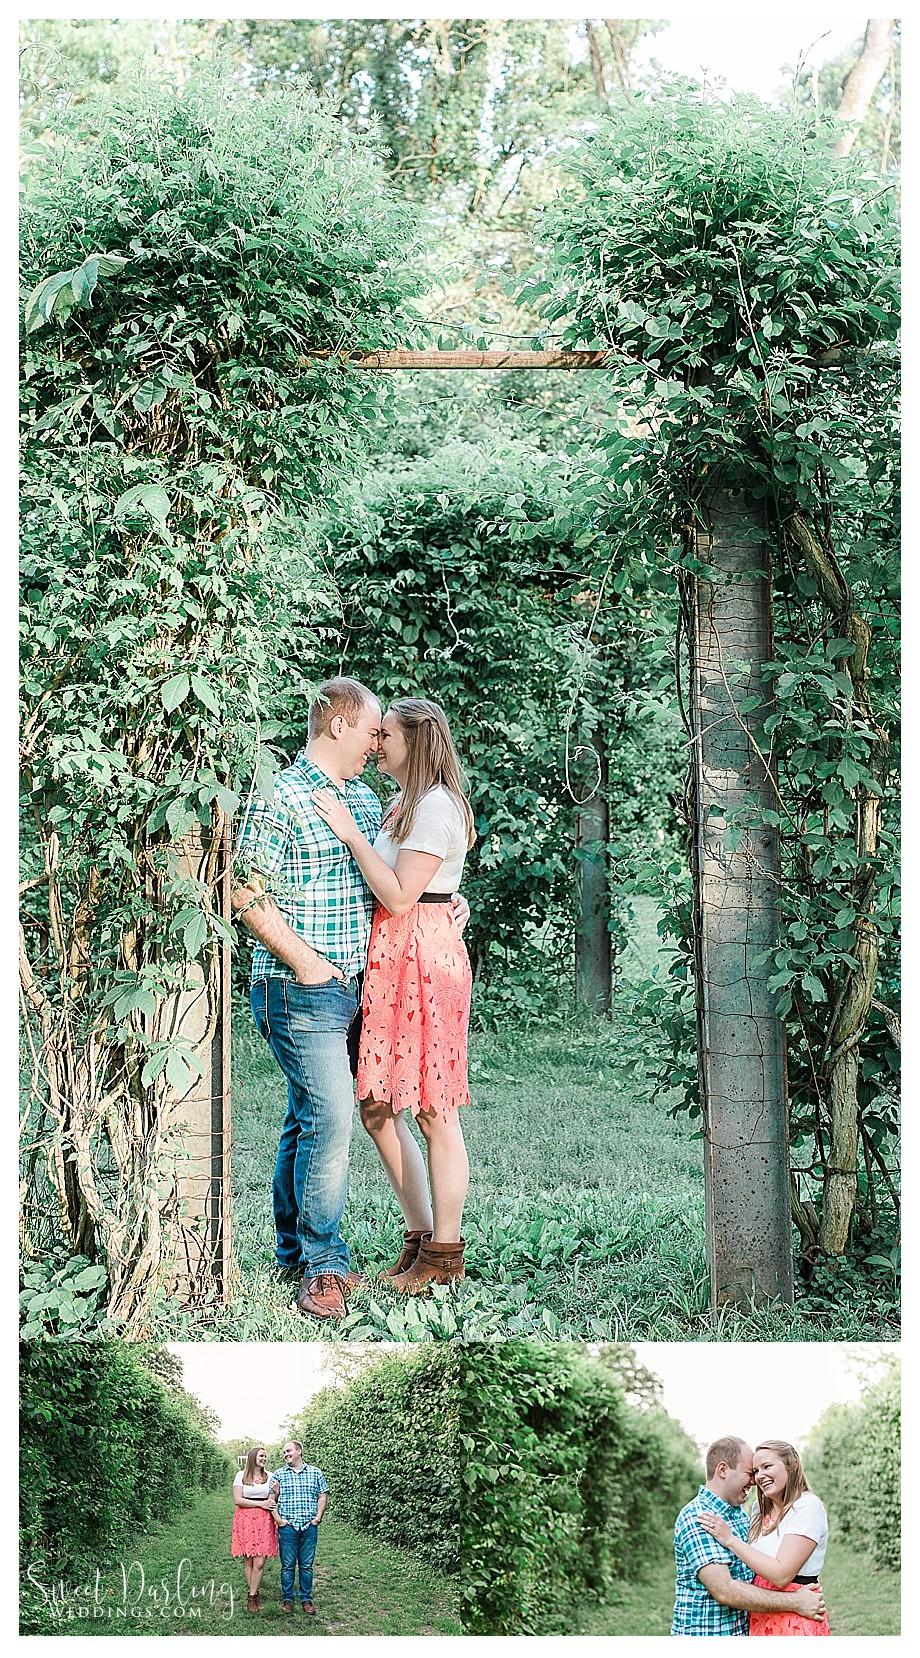 Engaged couple at Allerton Park Monticello IL